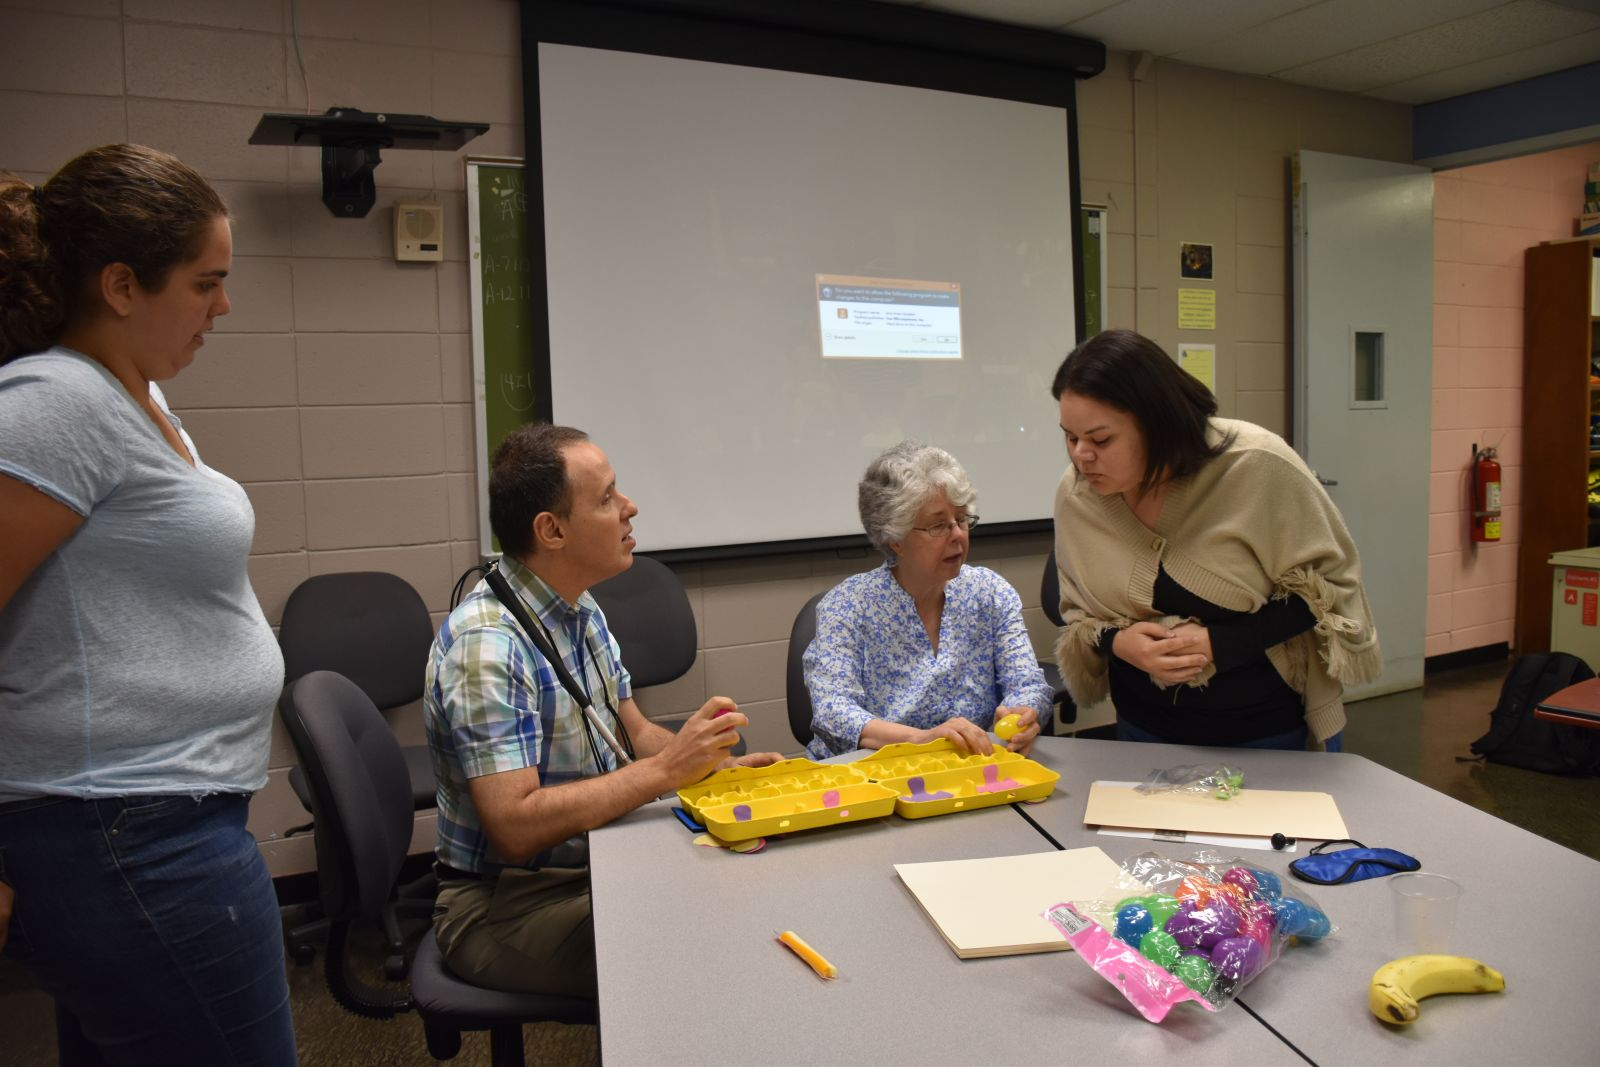 Two women demonstrate a tactile game to two seated instructors.